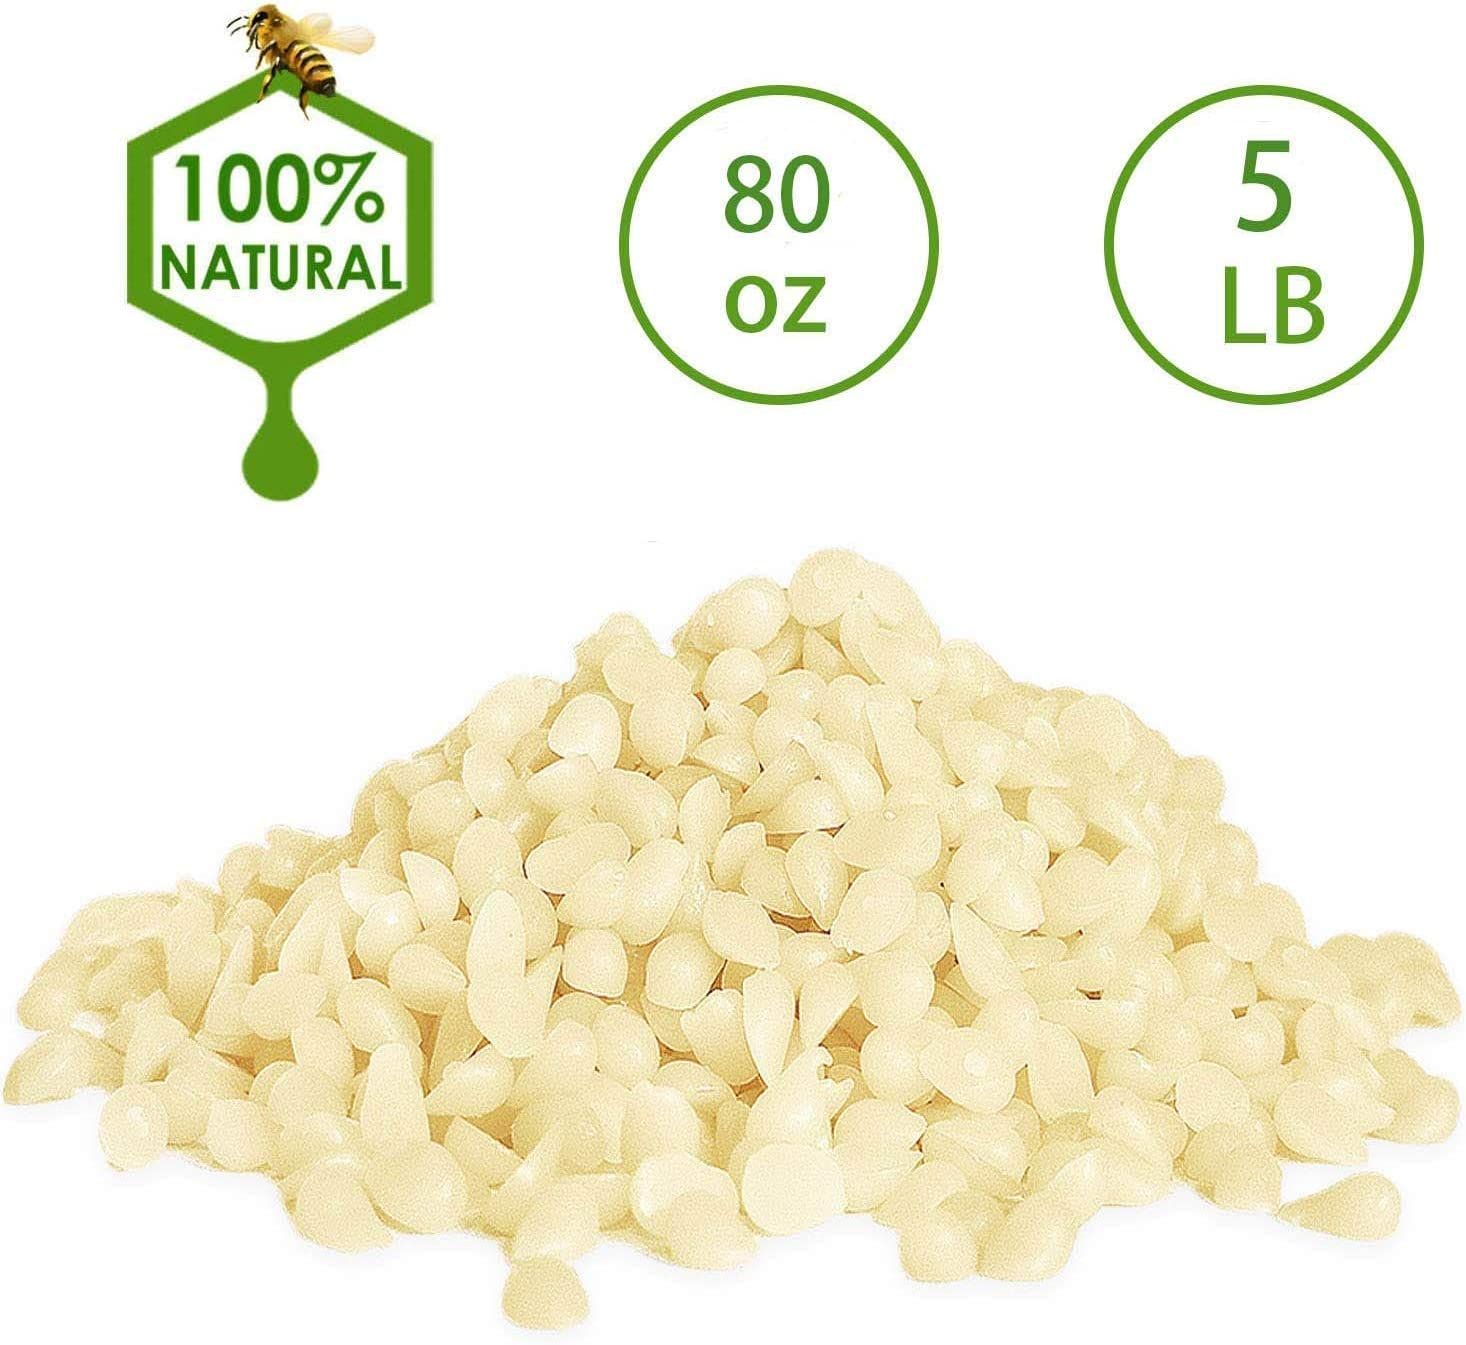 Howemon White Beeswax Pellets 5 lb 100% Pure and Natural Triple Filtered for Skin, Face, Body and Hair Care DIY Creams, Lotions, Lip Balm and Soap Making Supplies.